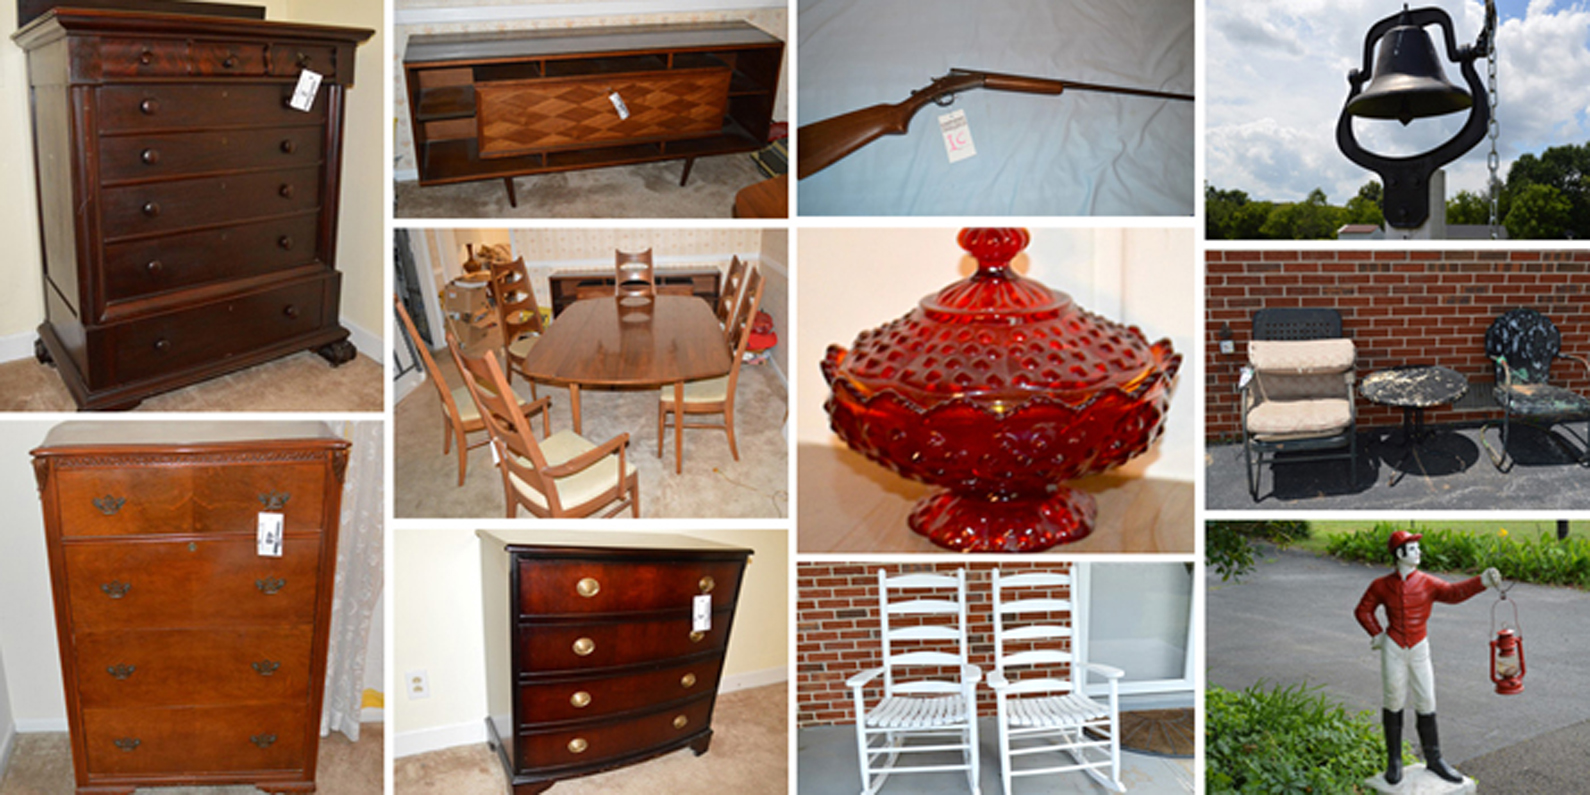 furniture, appliances, firearms, antiques, lawn, for sale, glassware, estate, sale, auction, comas, montgomery